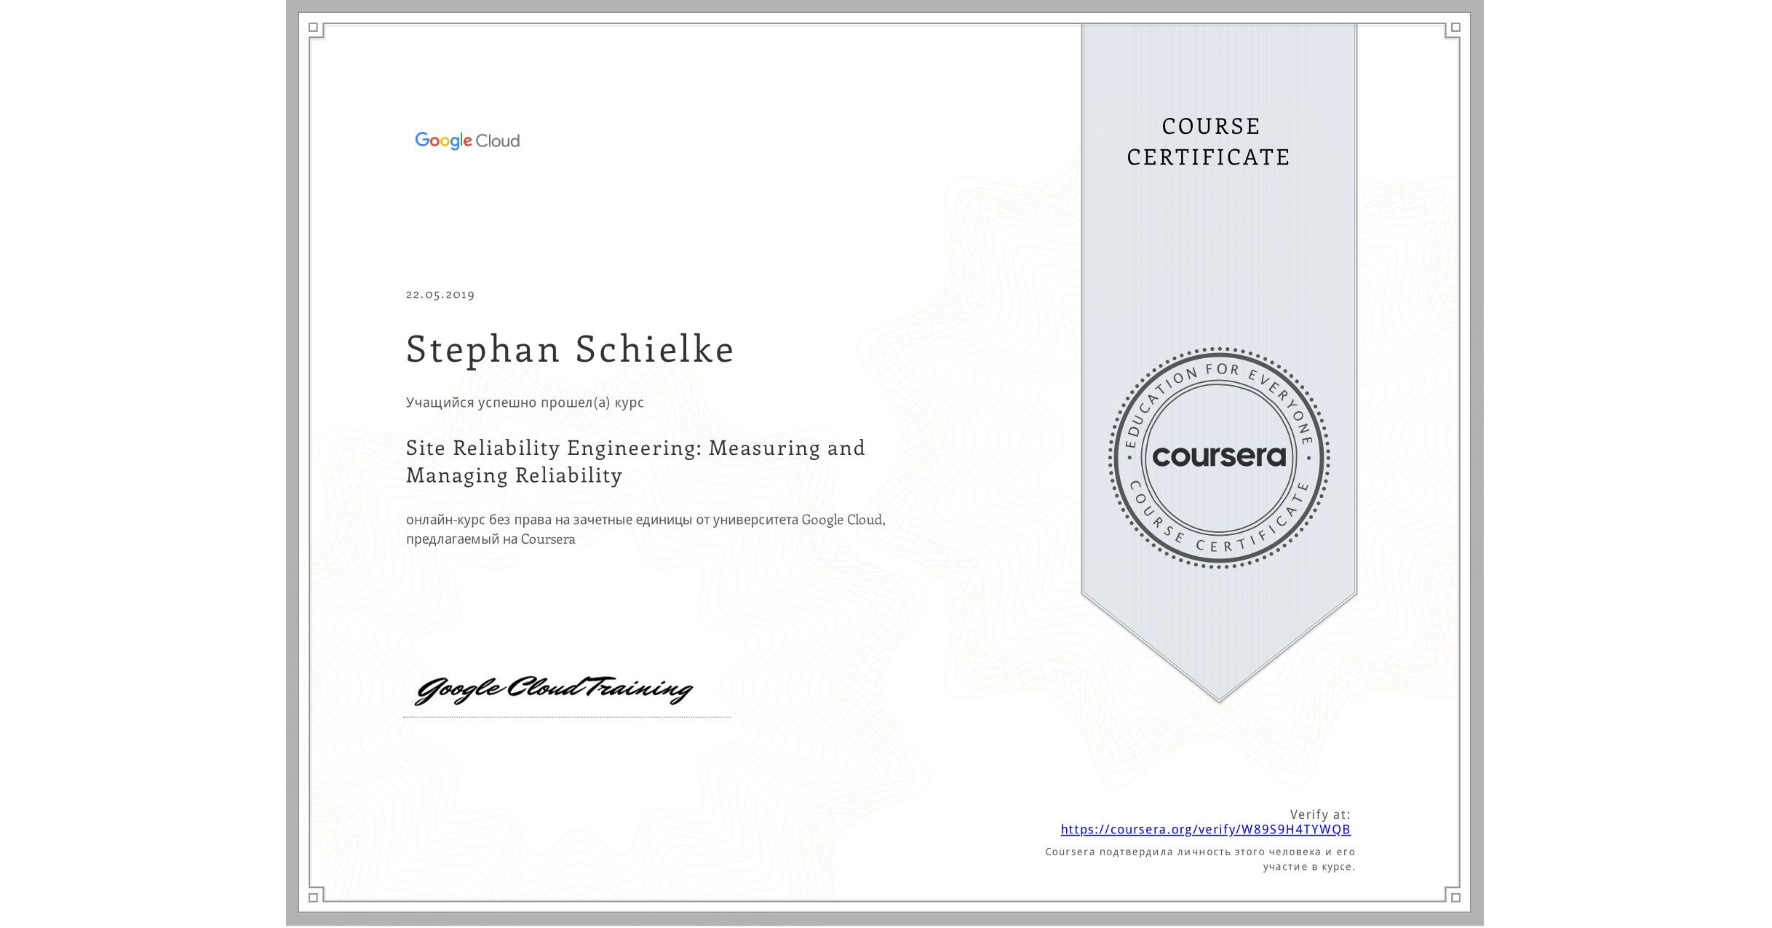 View certificate for Stephan Schielke, Site Reliability Engineering: Measuring and Managing Reliability, an online non-credit course authorized by Google Cloud and offered through Coursera